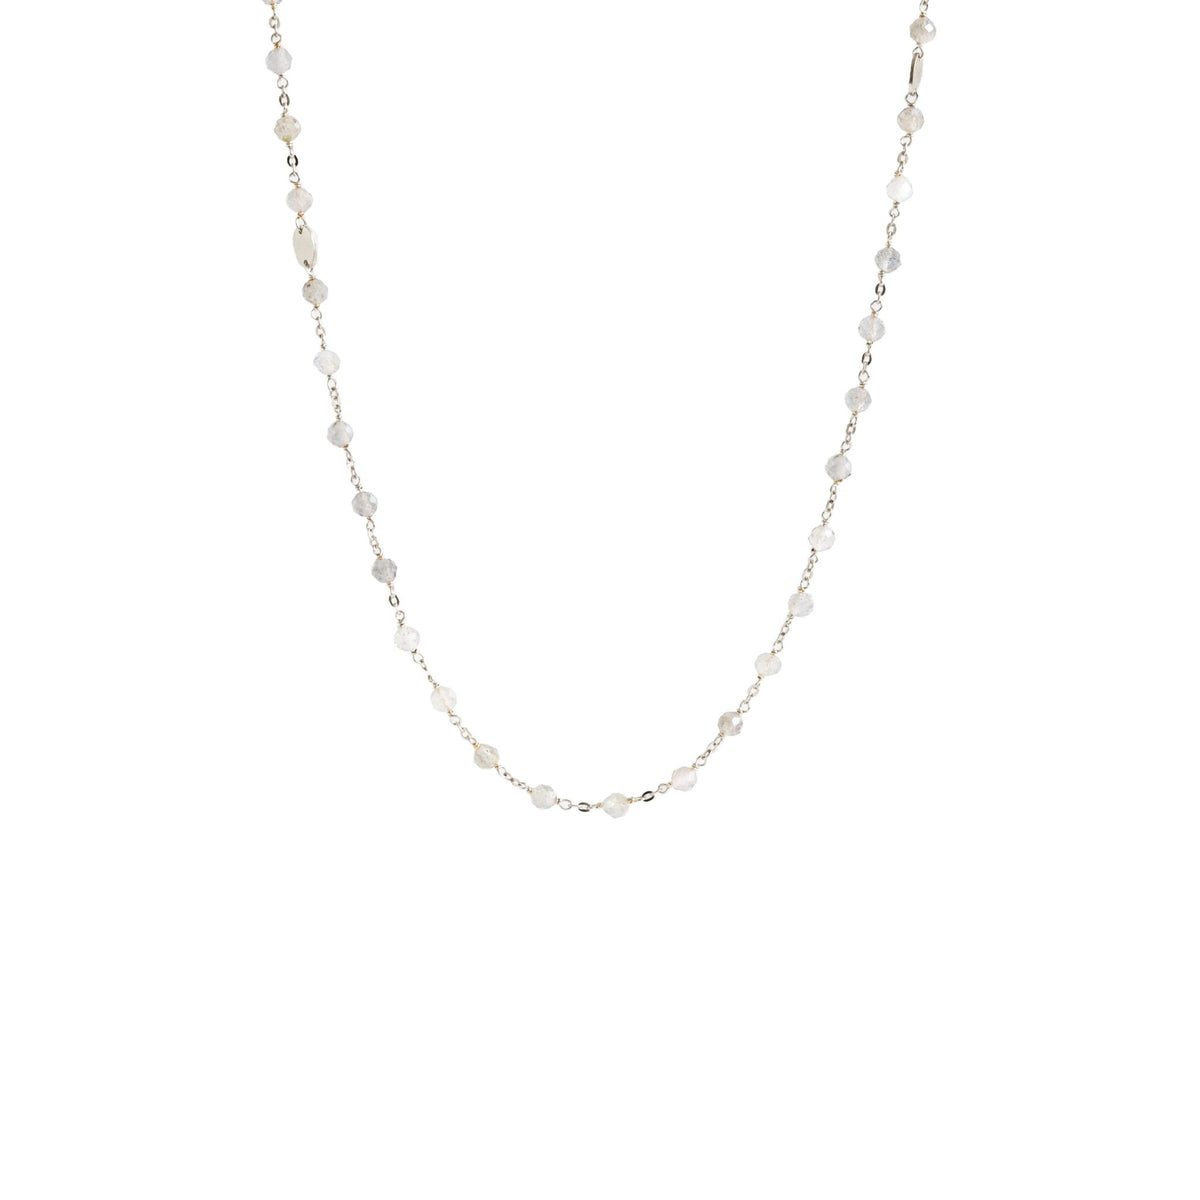 "ICONIC MIDI BEADED NECKLACE - RAINBOW MOONSTONE & SILVER 24-25"" - SO PRETTY CARA COTTER"